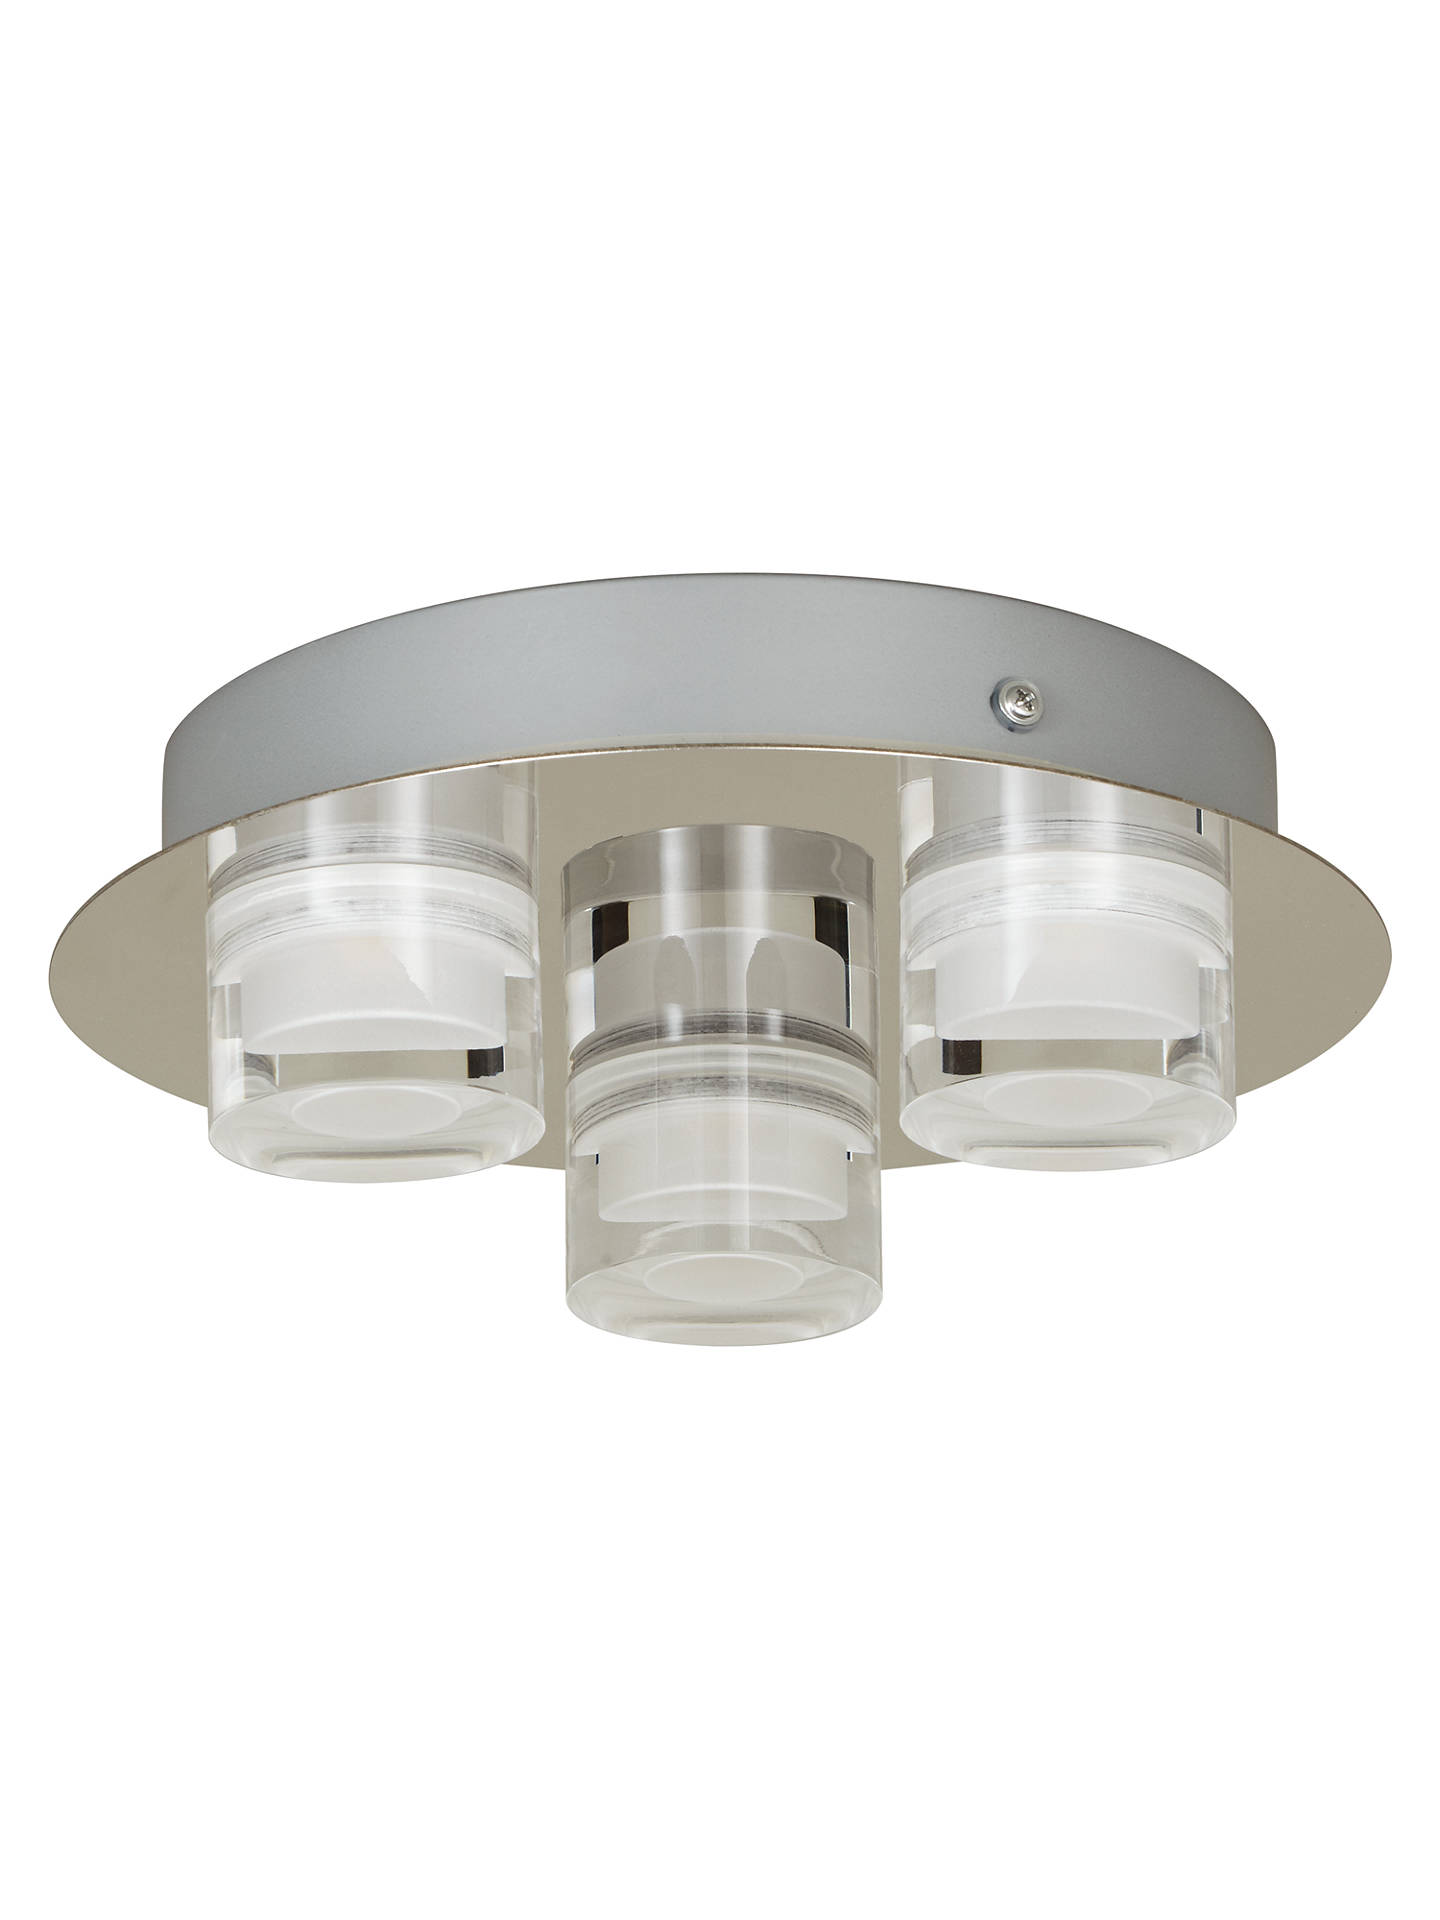 BuyJohn Lewis & Partners Presta Round Ceiling Light, Chrome Online at johnlewis.com